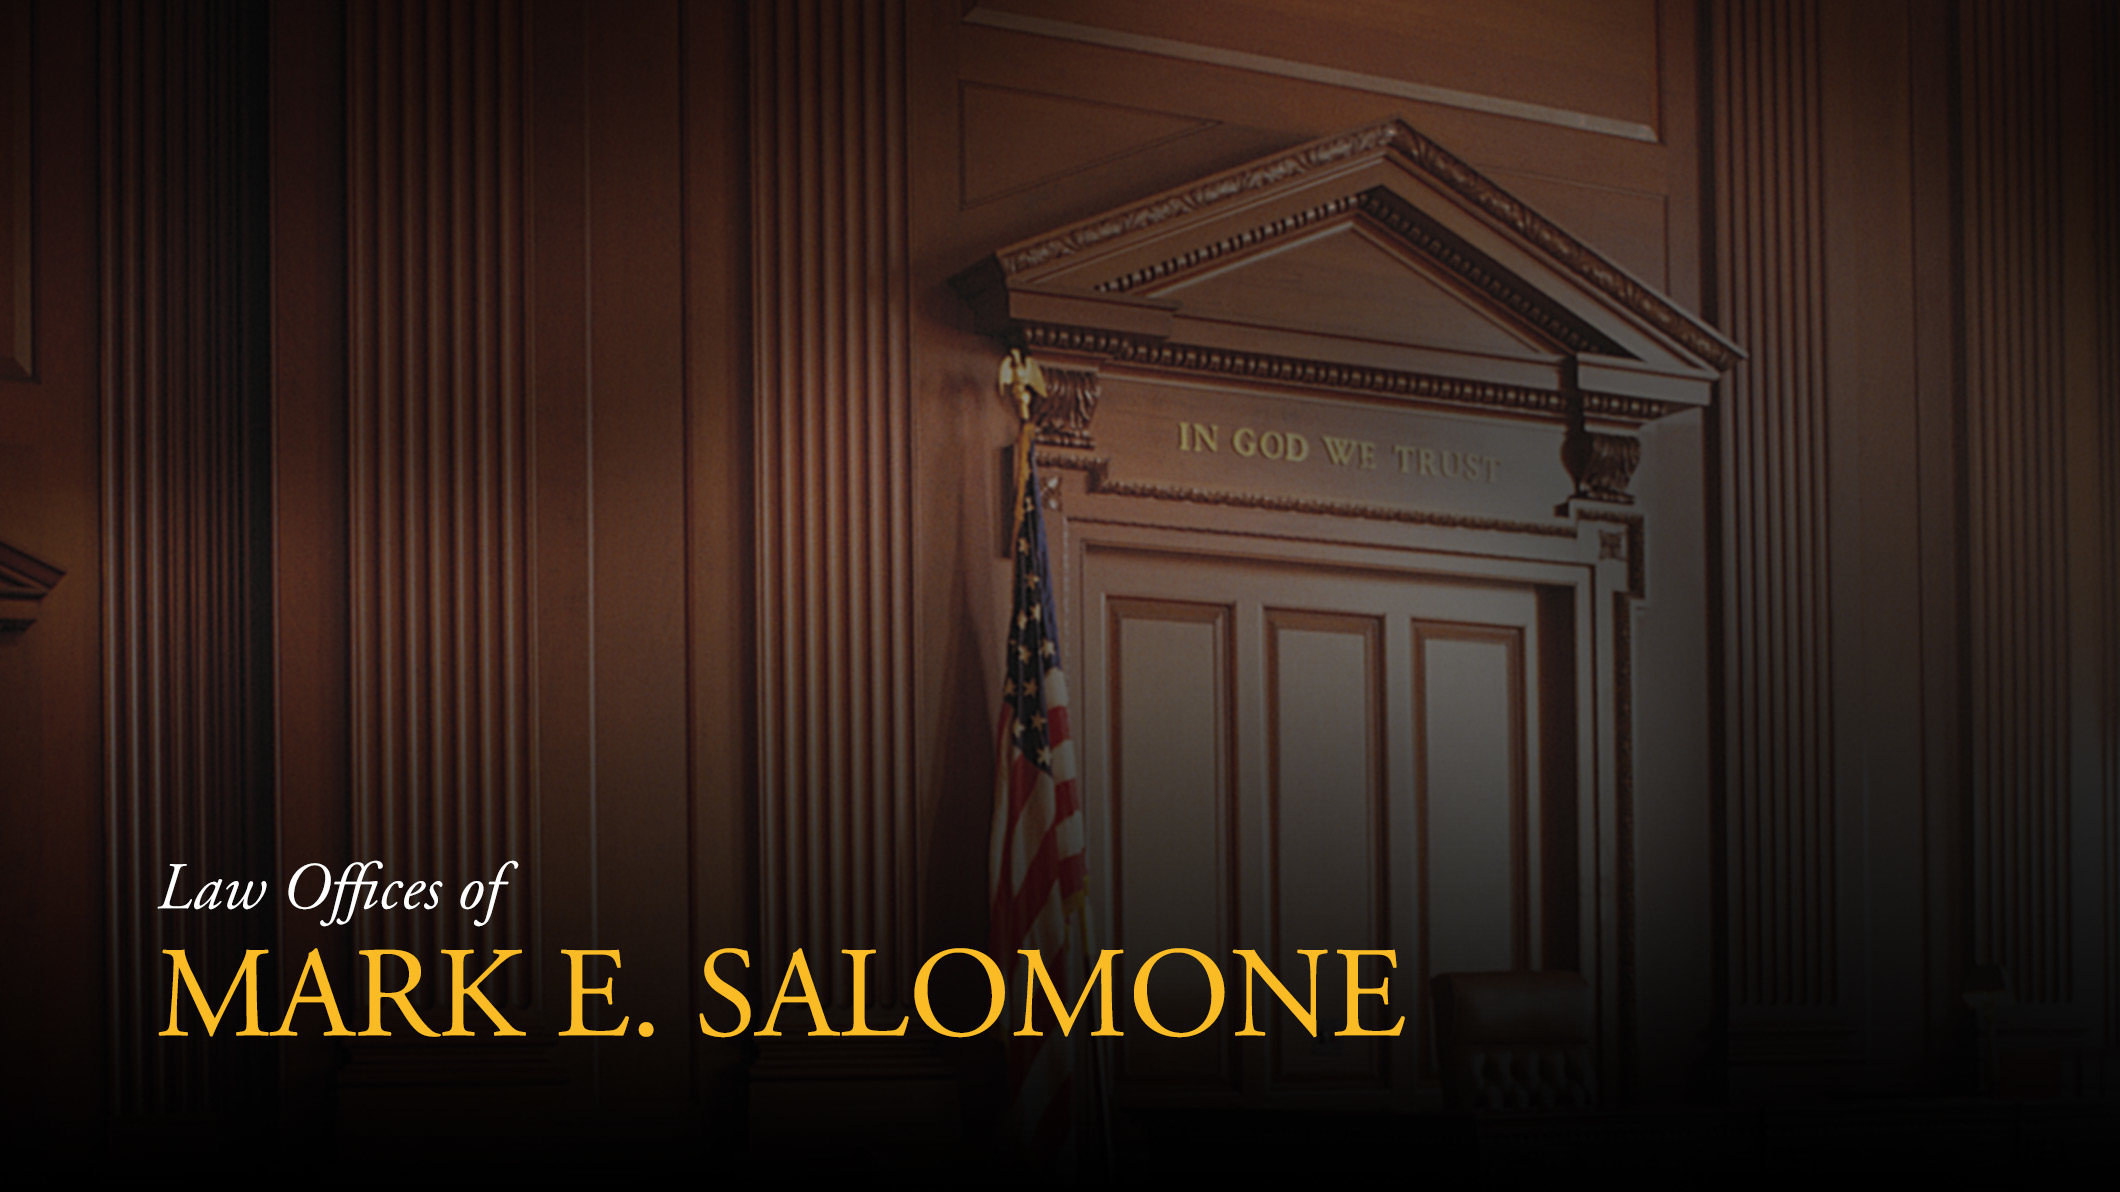 Law Offices of Mark E. Salomone - ad image